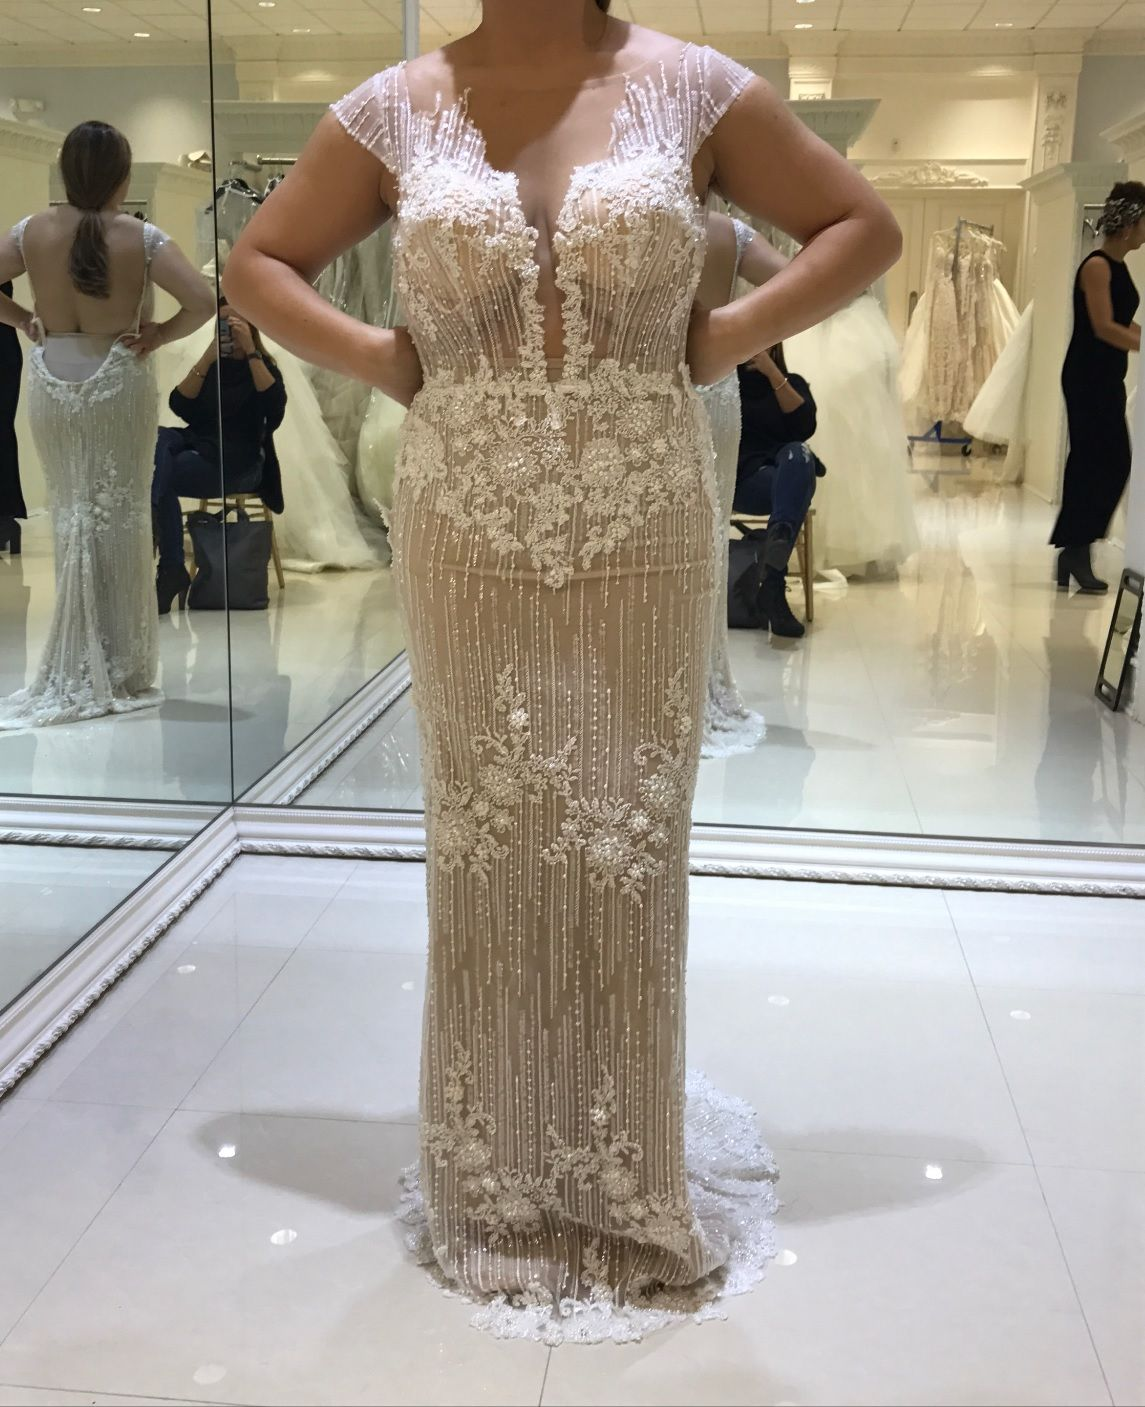 Plus size bridal gowns custom made to order for curvy brides by darius